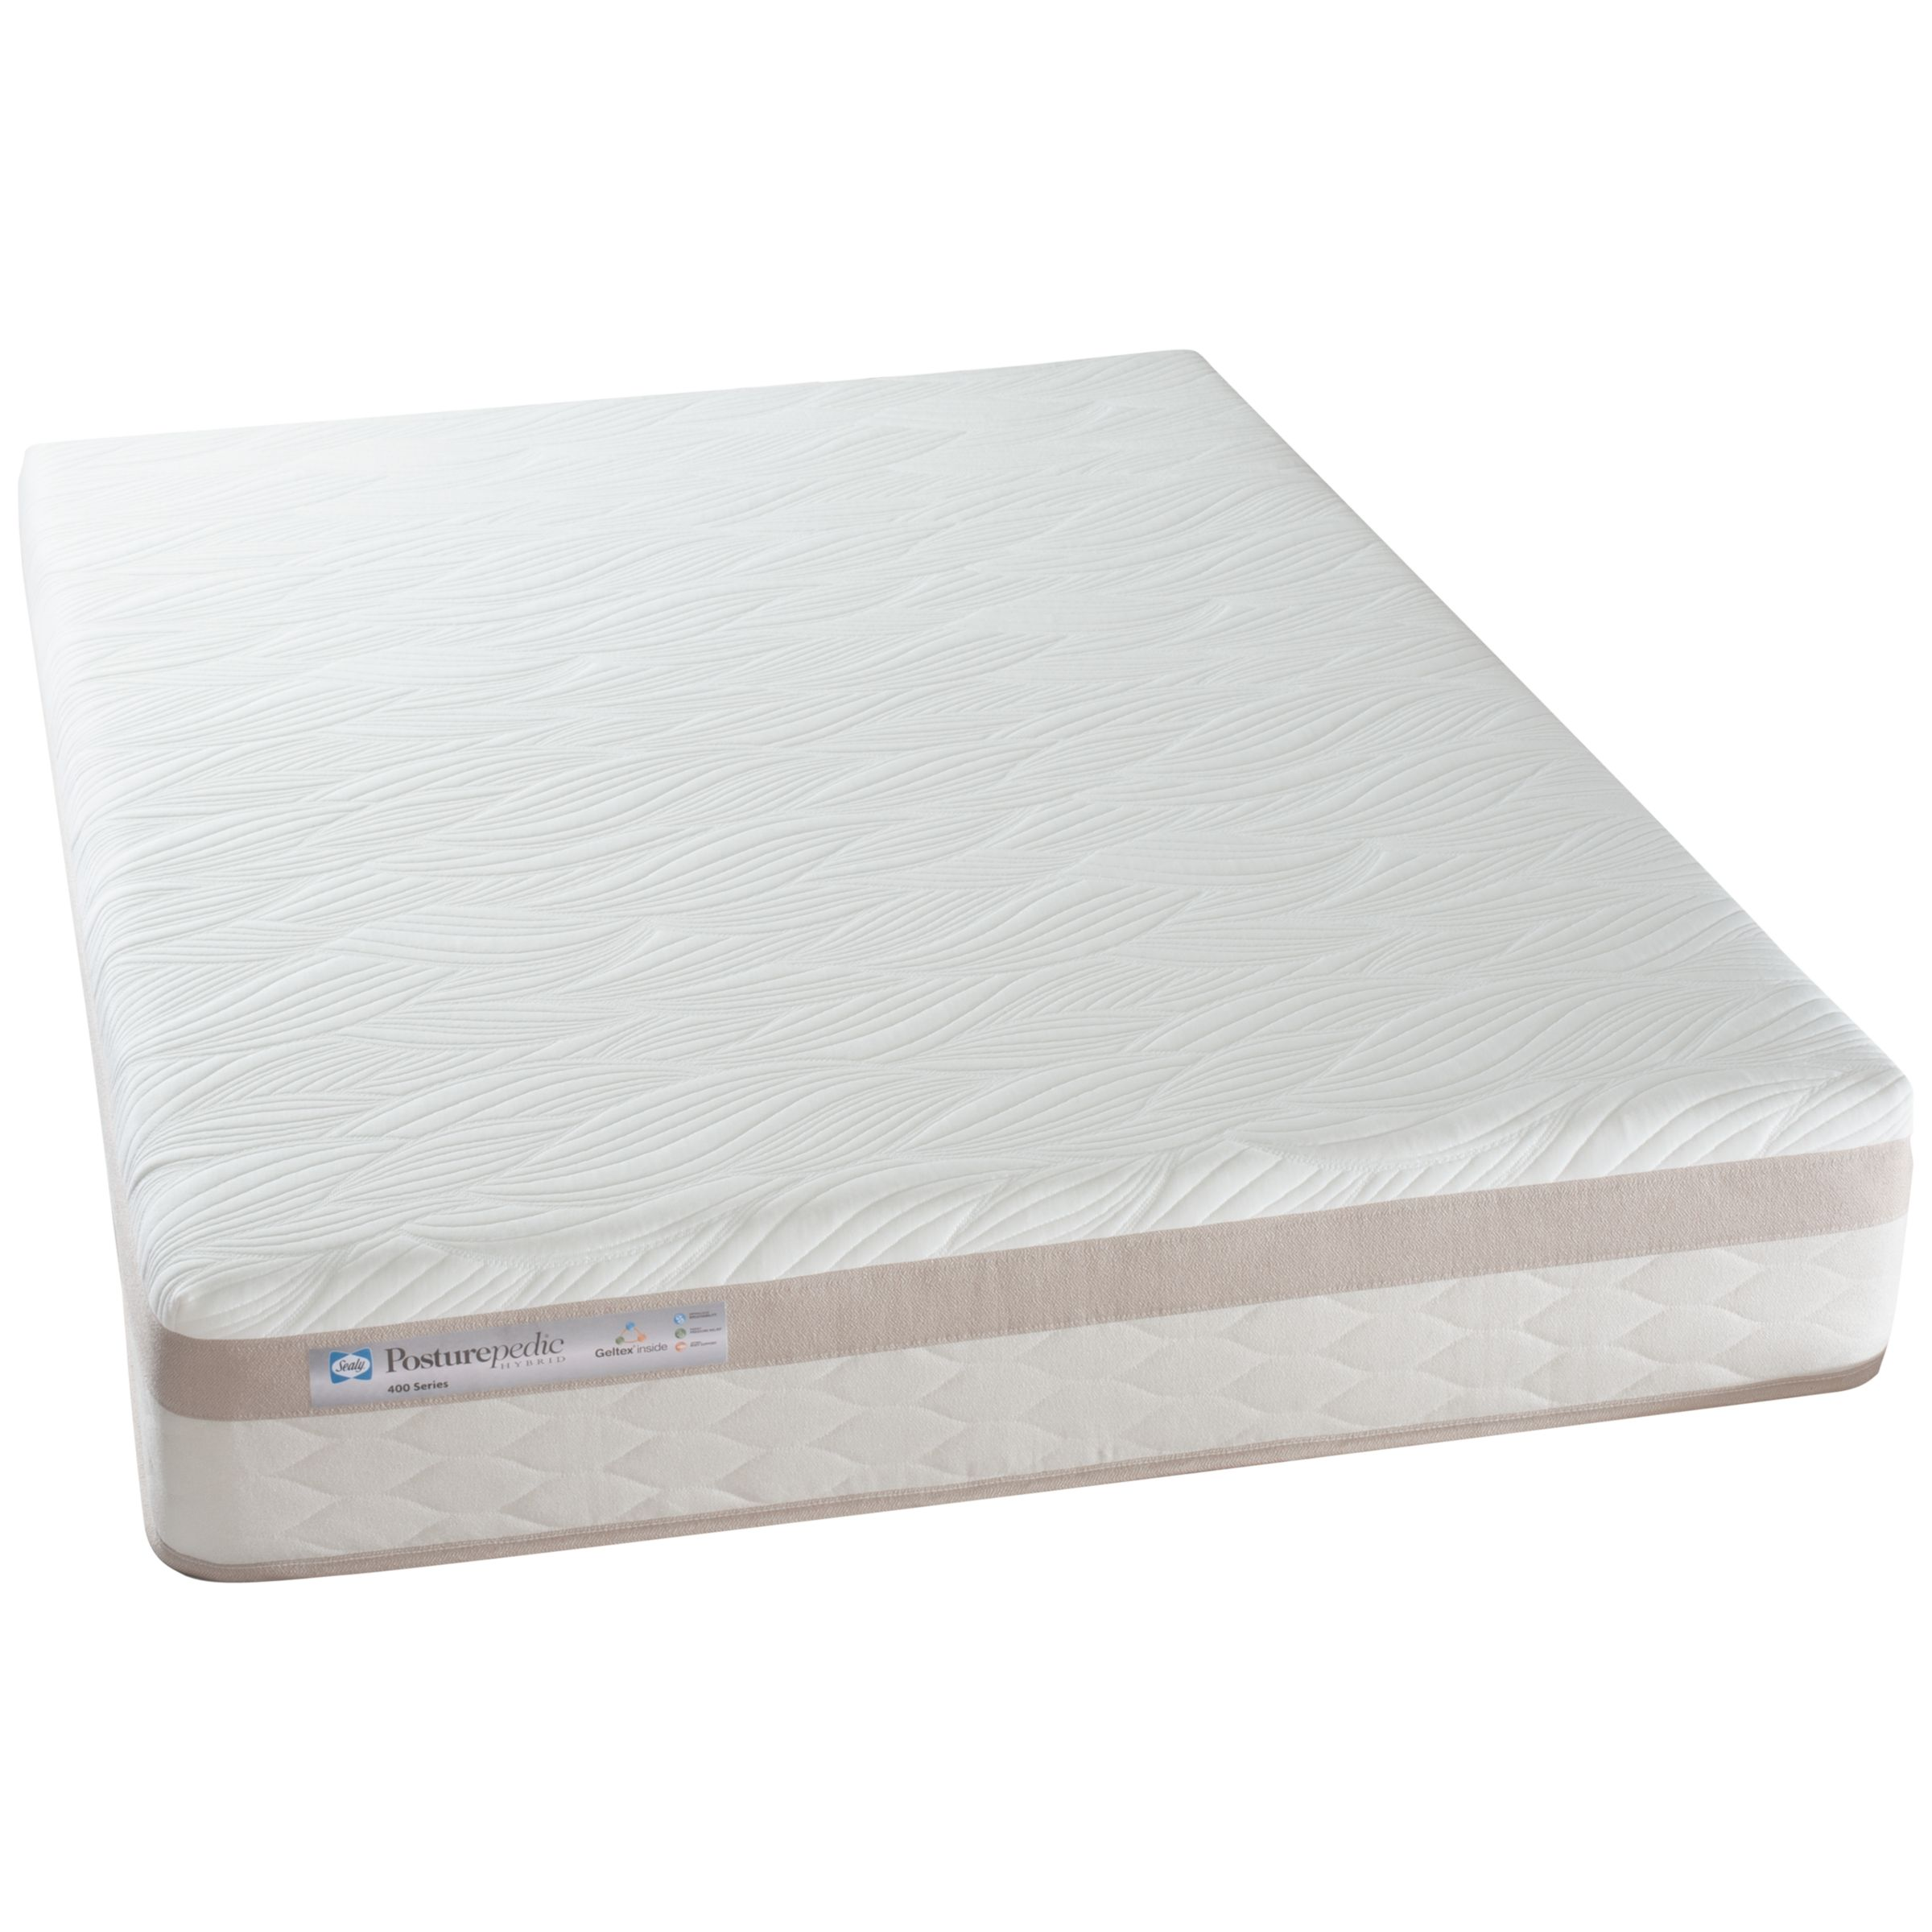 Sealy Posturepedic Hybrid Series 400 Mattress, Super Kingsize